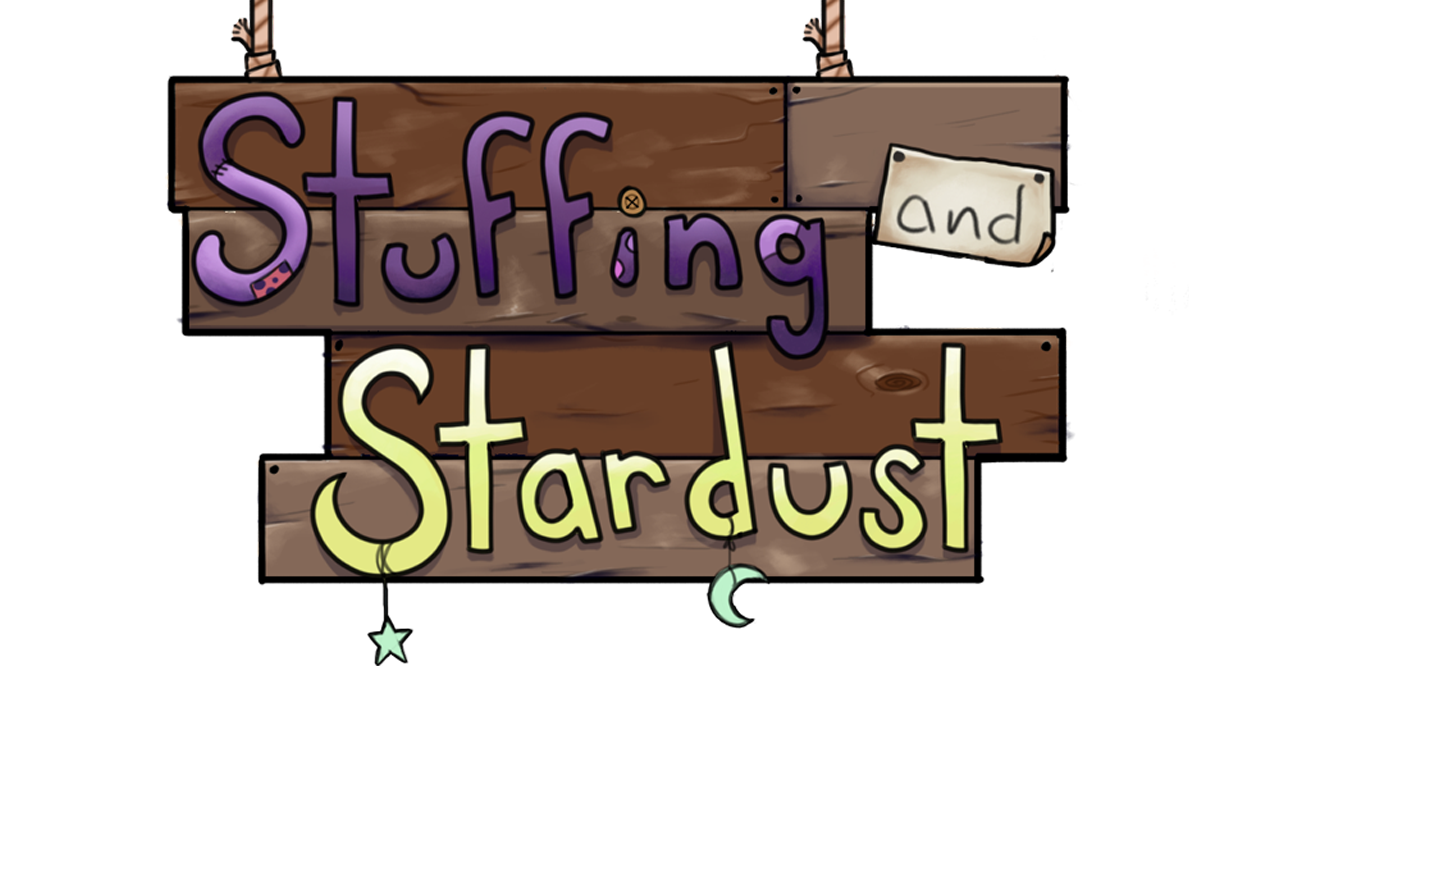 Stuffing and Stardust